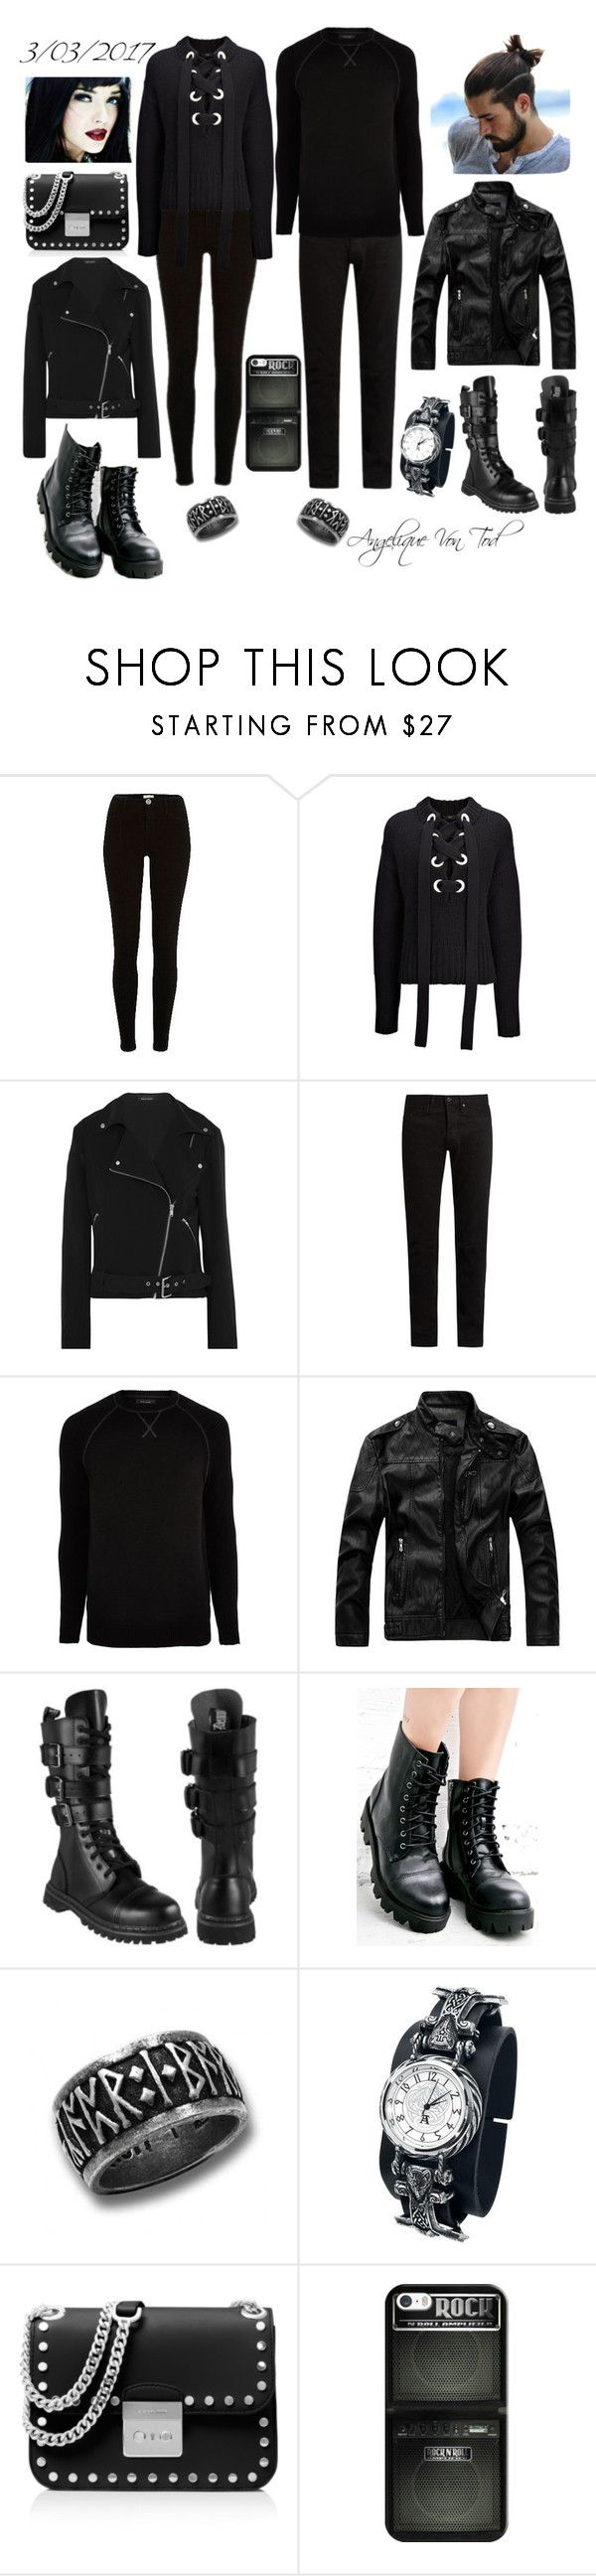 """Metal Gothic Outfit"" by angelique-von-tod ❤ liked on Polyvore featuring River Island, Joseph, Equipment, KURO, Maria ke Fisherman, MICHAEL Michael Kors and Casetify"